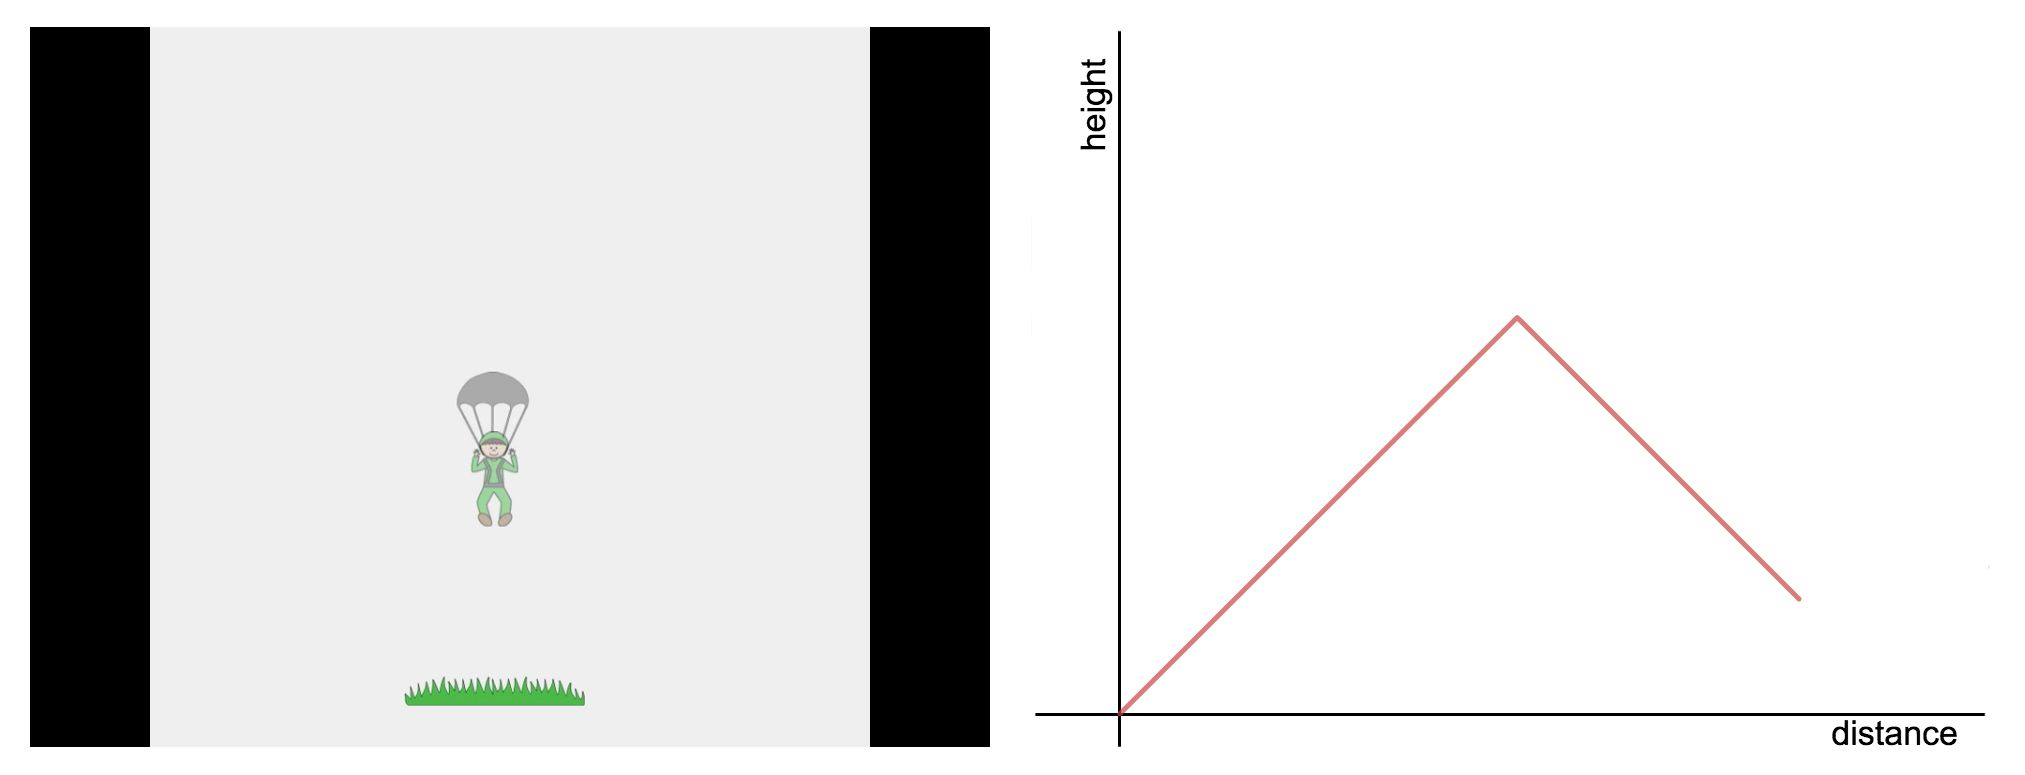 The Cannon Man exercise helps students think about how graphs work.